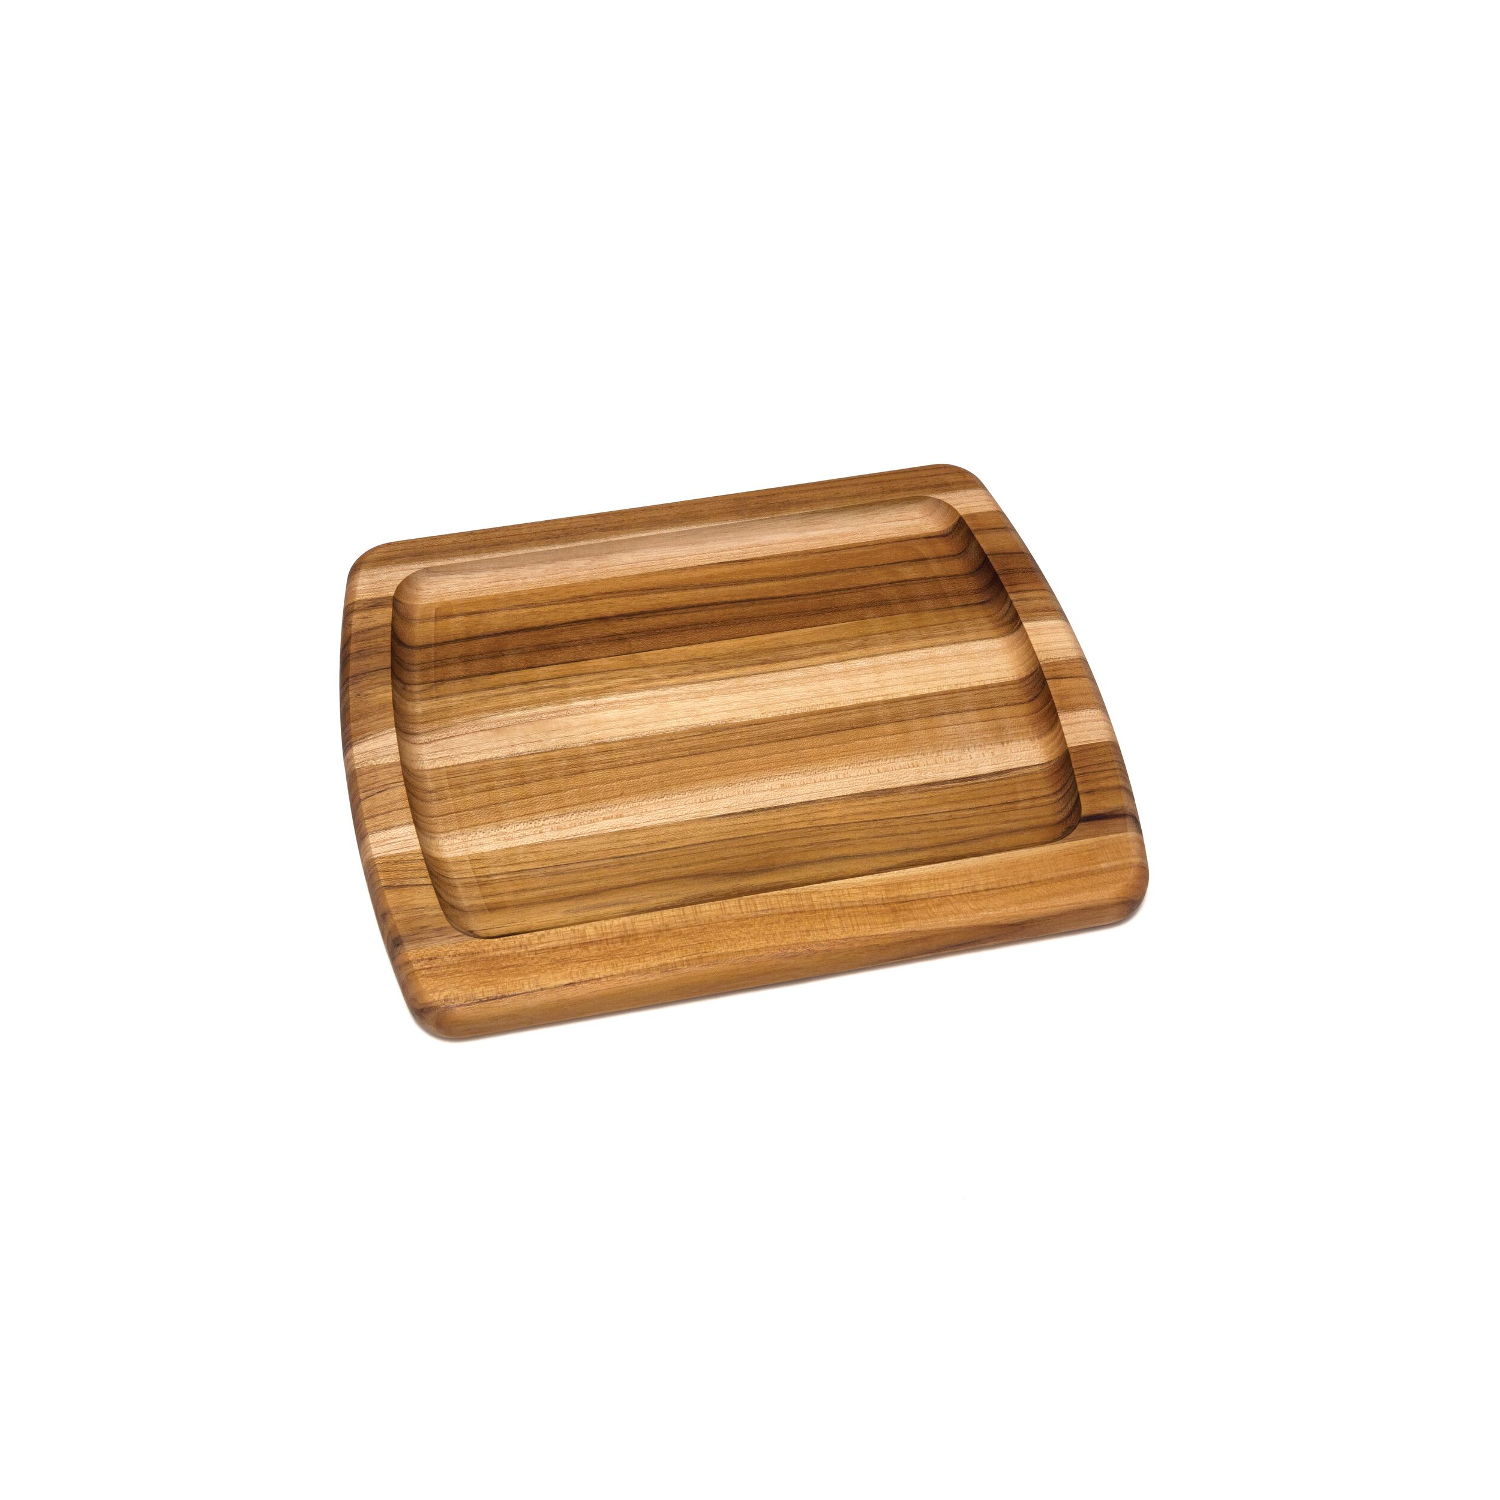 Lipper Teak Edge Grain Serving Platter